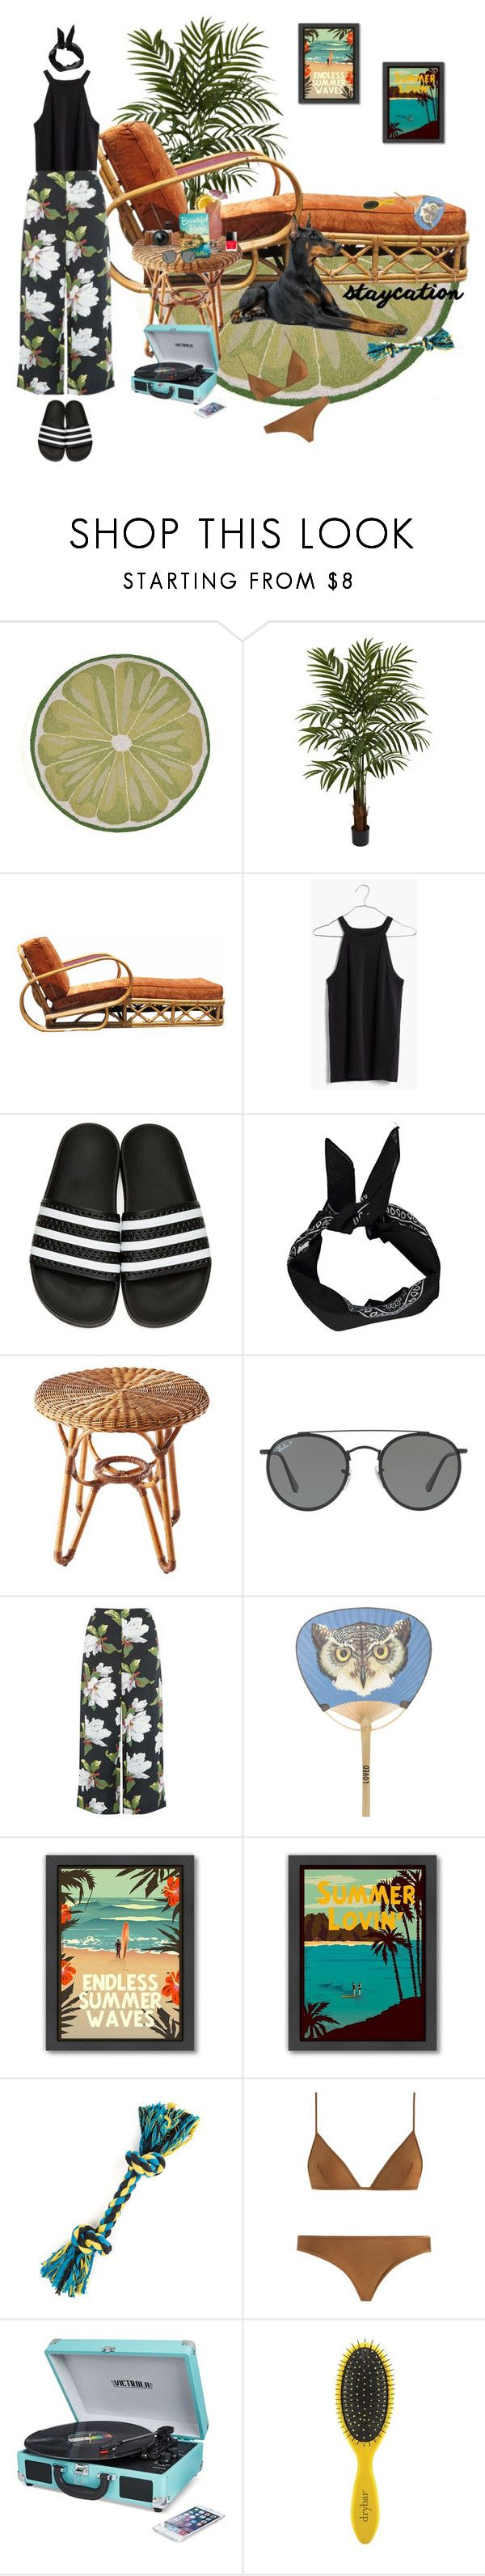 """Personal Paradise"" by rachael-aislynn ❤ liked on Polyvore featuring Nearly Natural, Madewell, adidas Originals, Boohoo, Selamat, Ray-Ban, Warehouse, Gucci, Americanflat and Fujifilm"